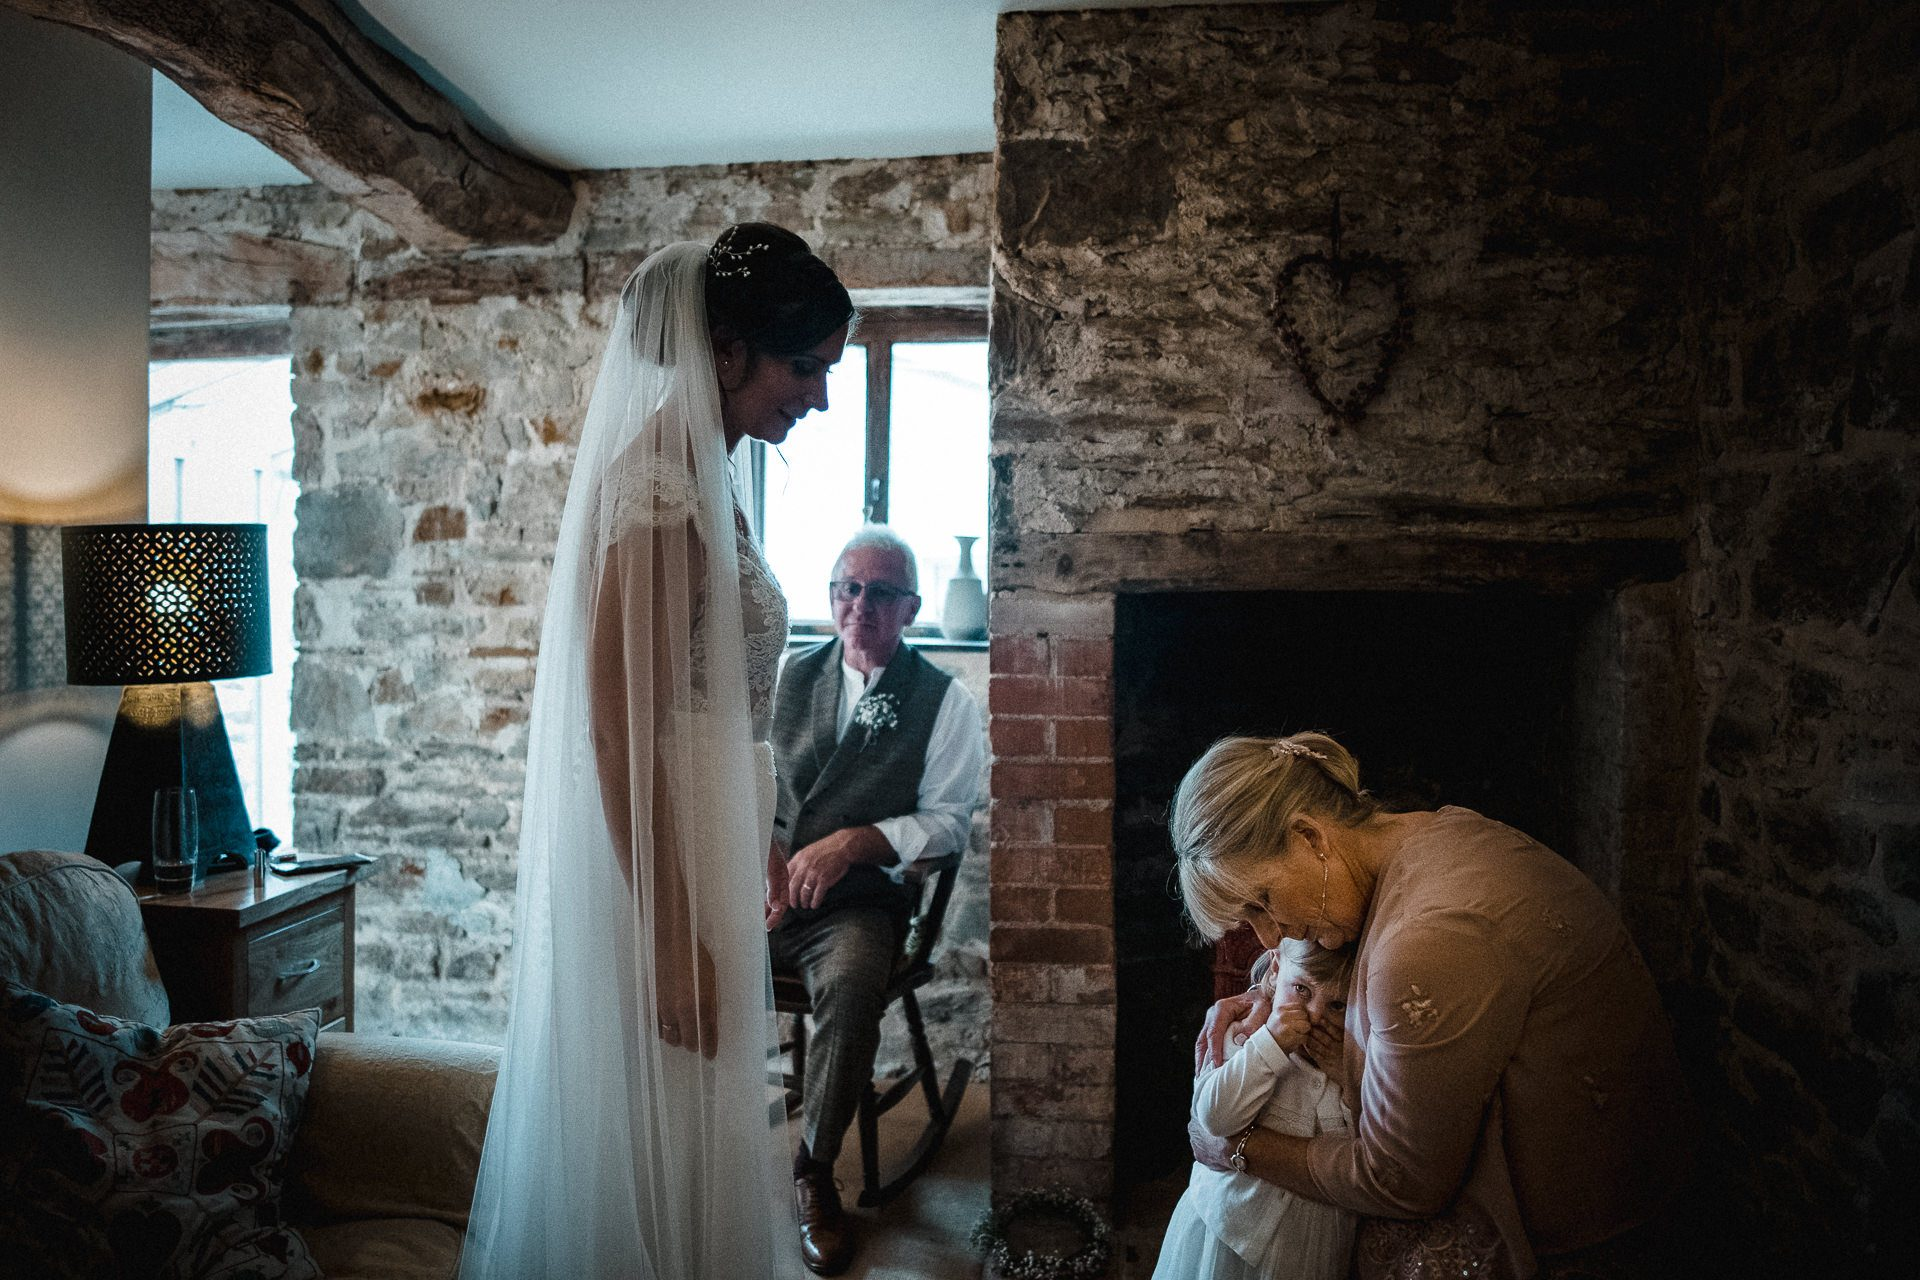 0063-DEVON-SOMERSET-WEDDING-PHOTOGRAPHER-0290-BEST-OF-2019-LOUISE-MAY-DEVON-SOMERSET-WEDDING-PHOTOGRAPHY-LM2_8586